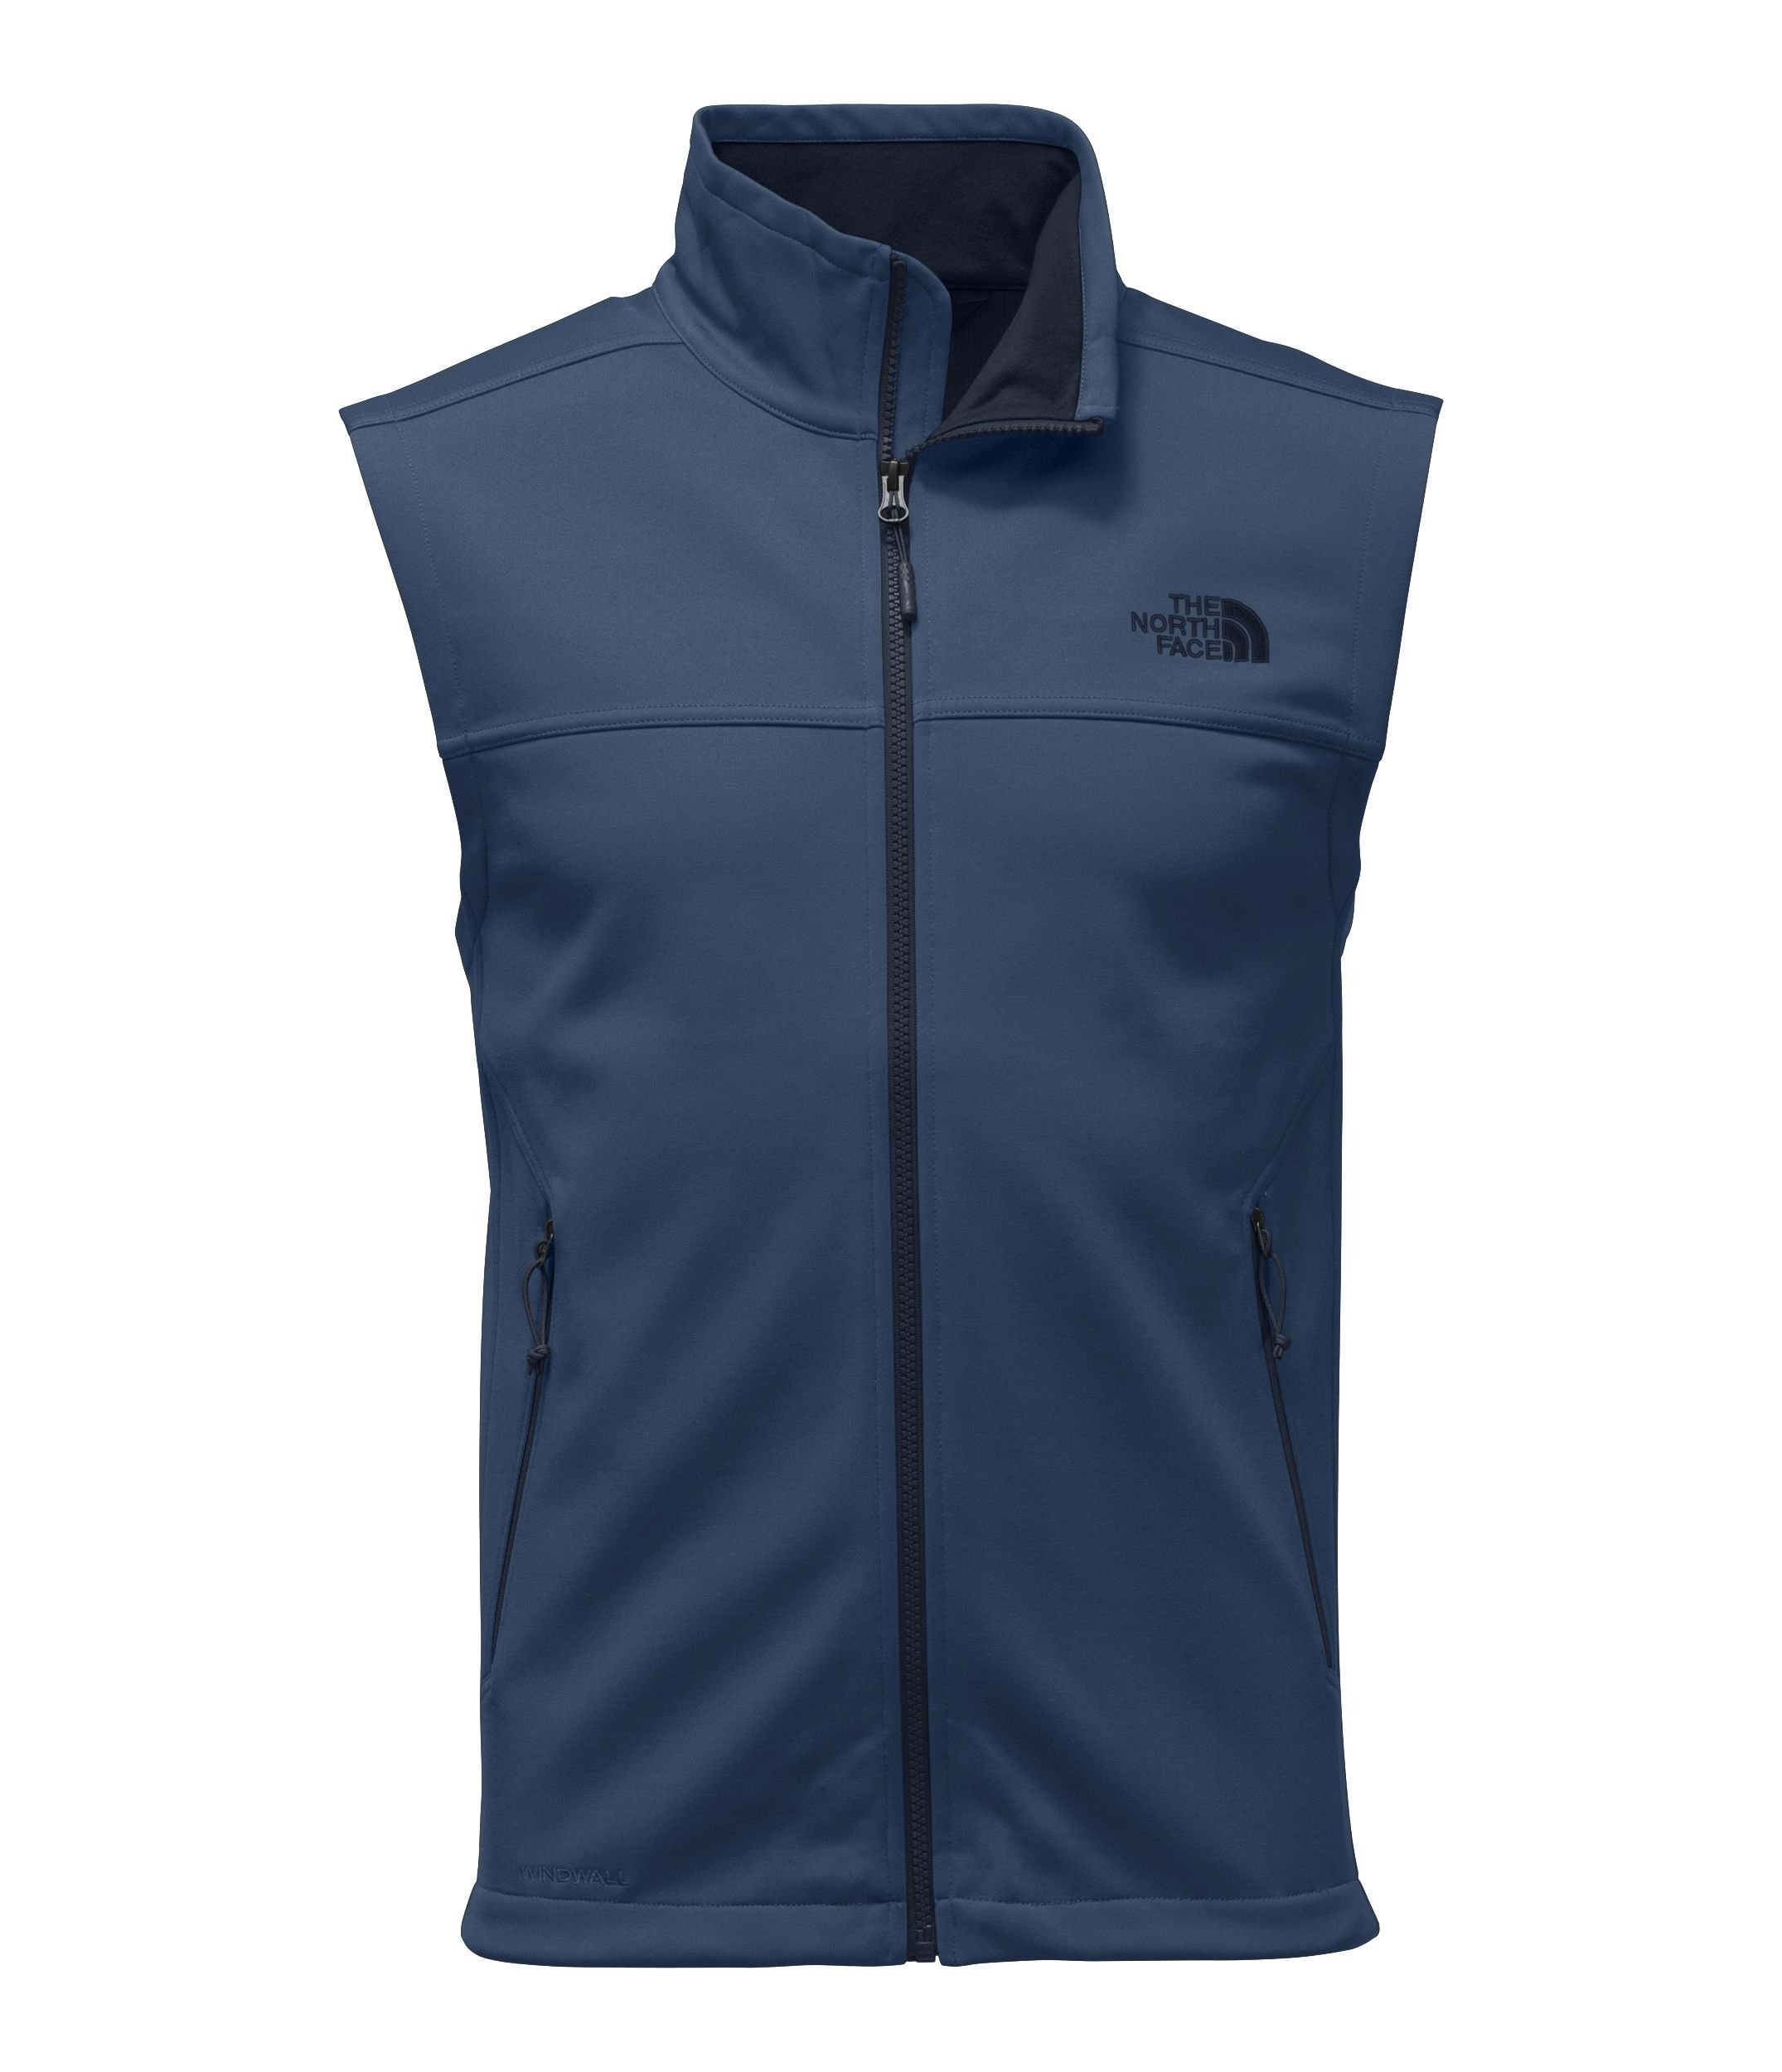 The North Face Men's Apex Canyonwall Vest - Shady Blue & Shady Blue - S